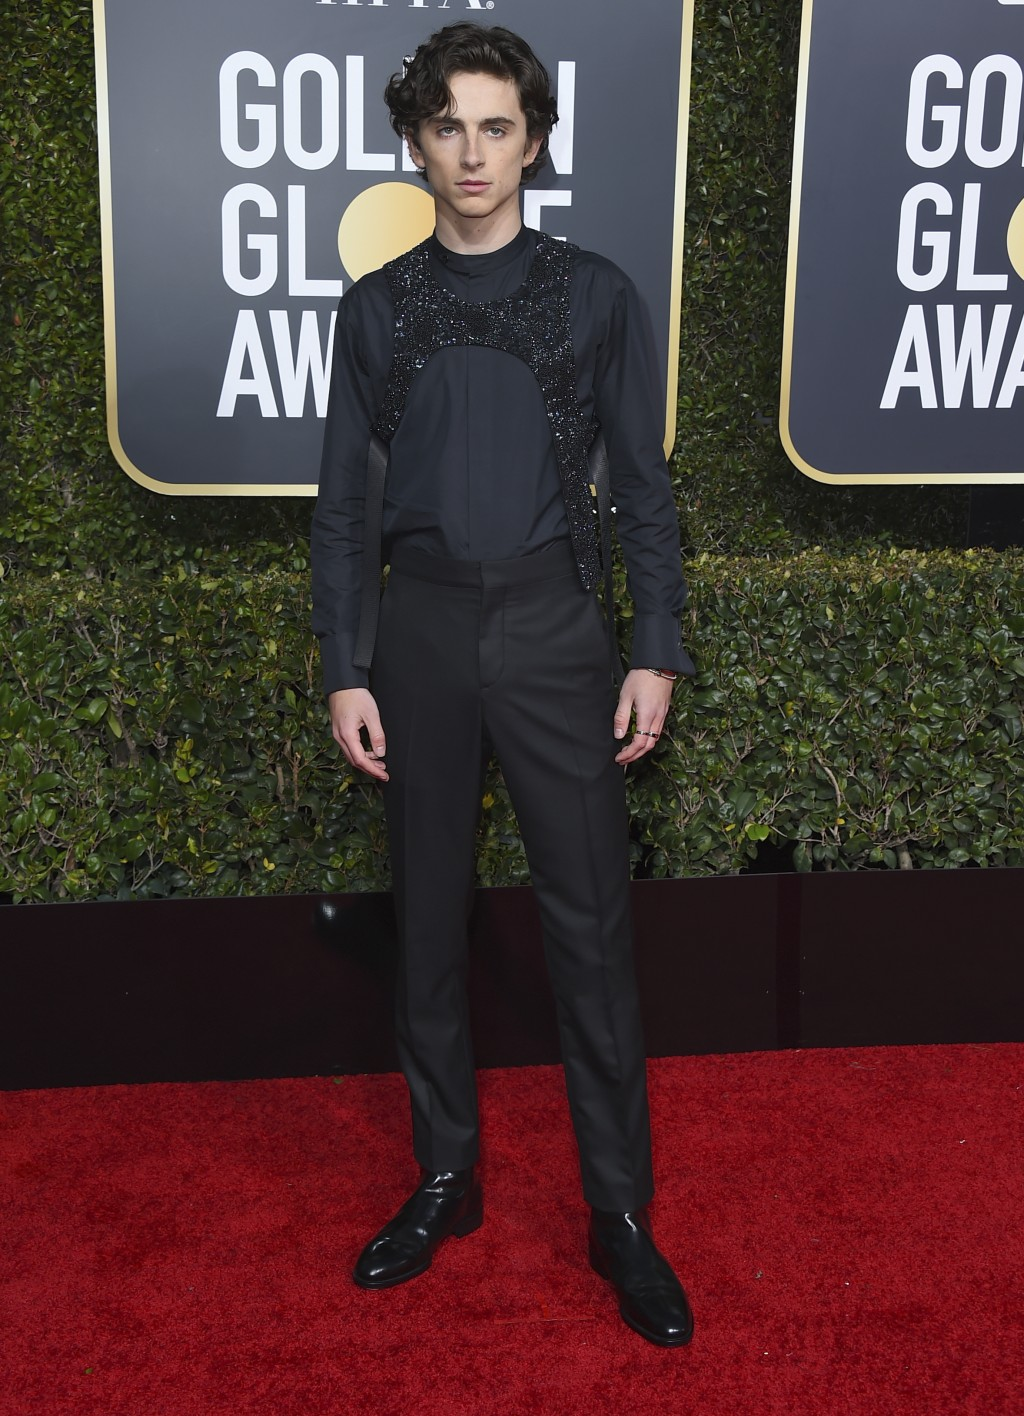 Timothee Chalamet arrives at the 76th annual Golden Globe Awards at the Beverly Hilton Hotel on Sunday, Jan. 6, 2019, in Beverly Hills, Calif. (Photo